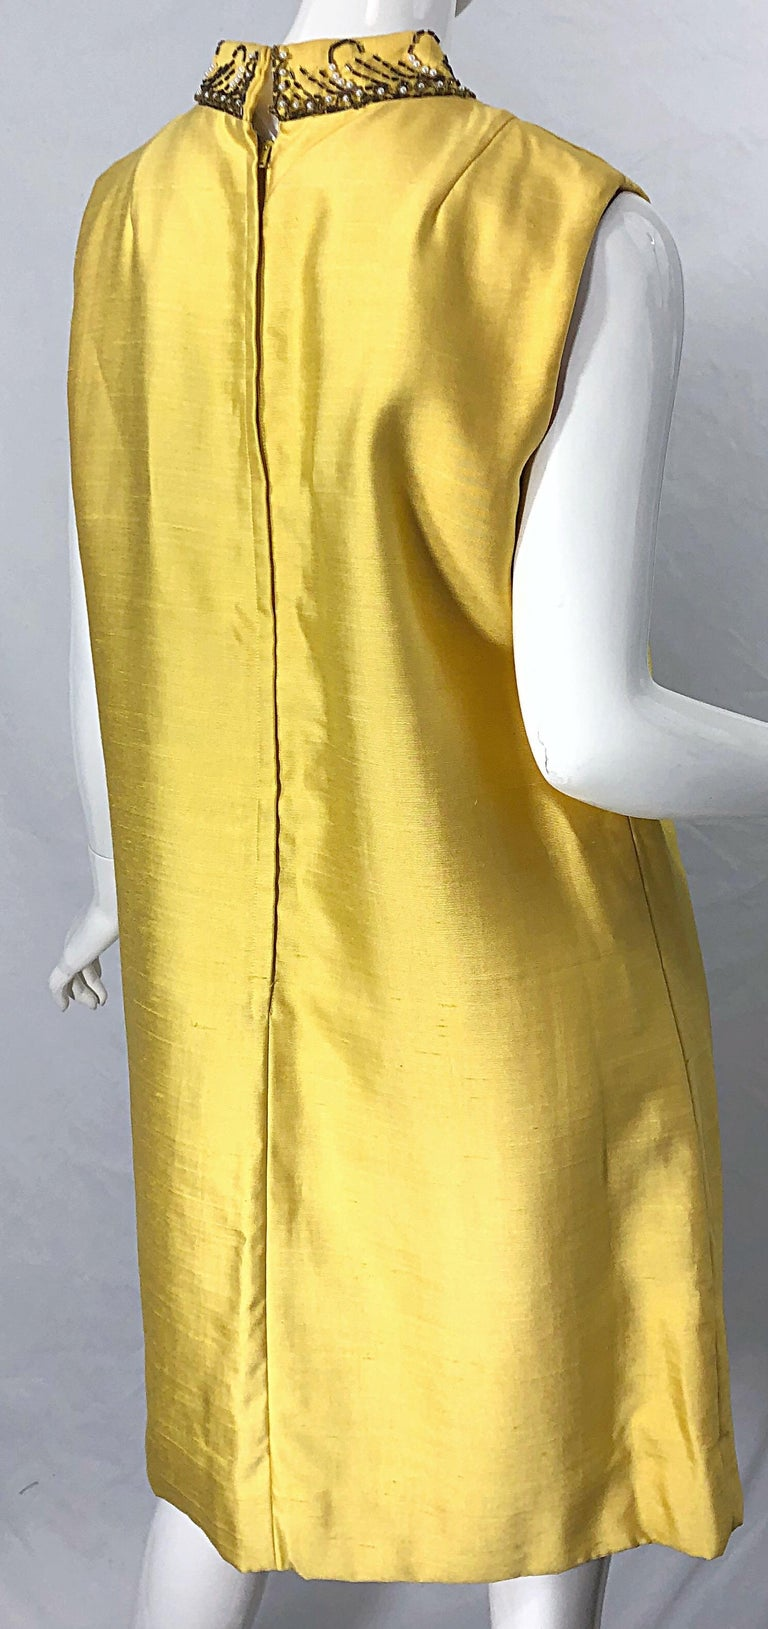 1960s Large size Yellow Beaded Rhinestone Silk Shantung Vintage 60s Shift Dress For Sale 6